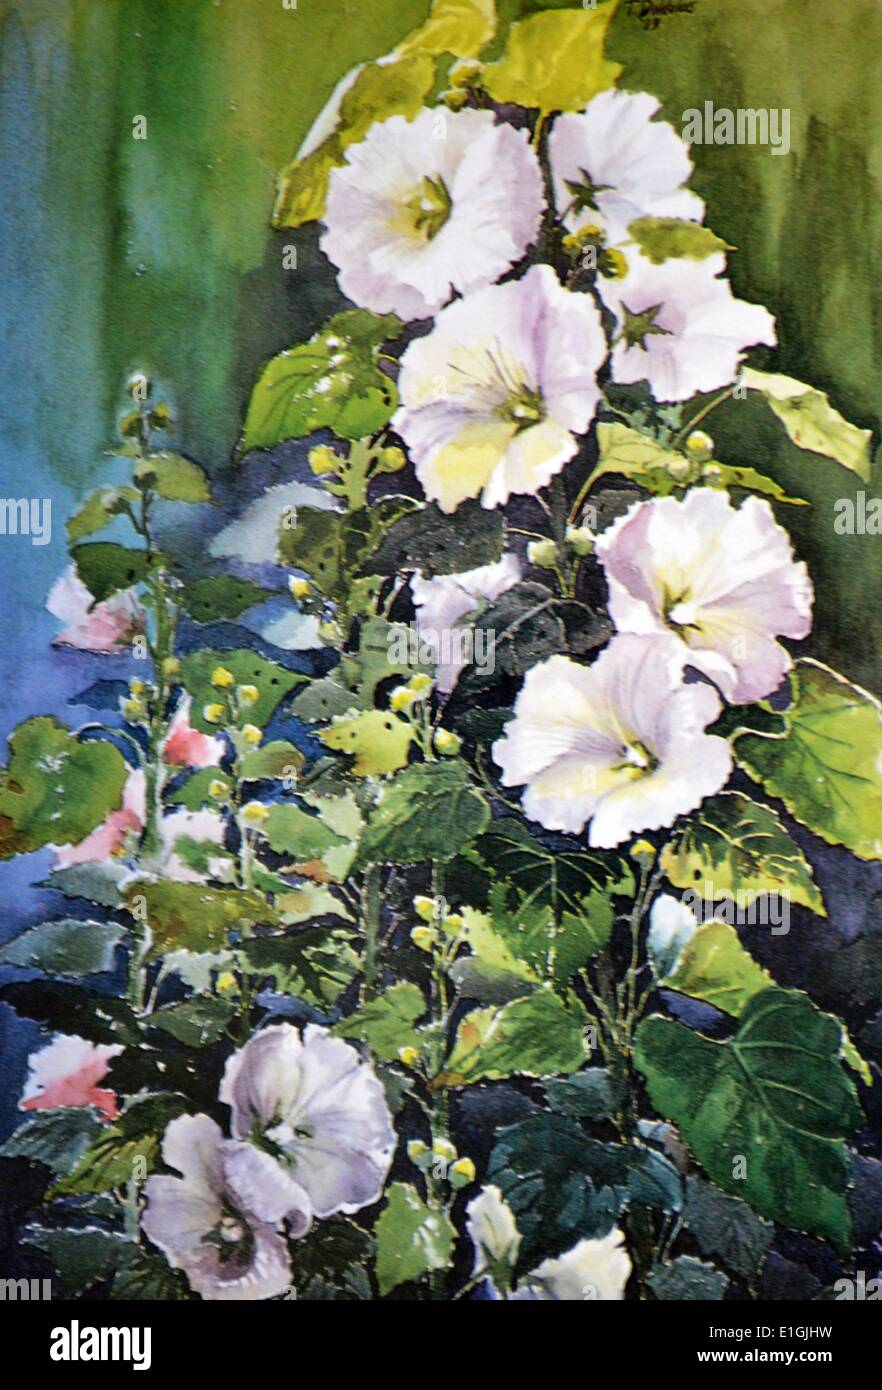 Philippines filipino art asian art teresita sarmiento duldulao white search results for philippines filipino art asian art teresita sarmiento duldulao white flowers stock photos and images mightylinksfo